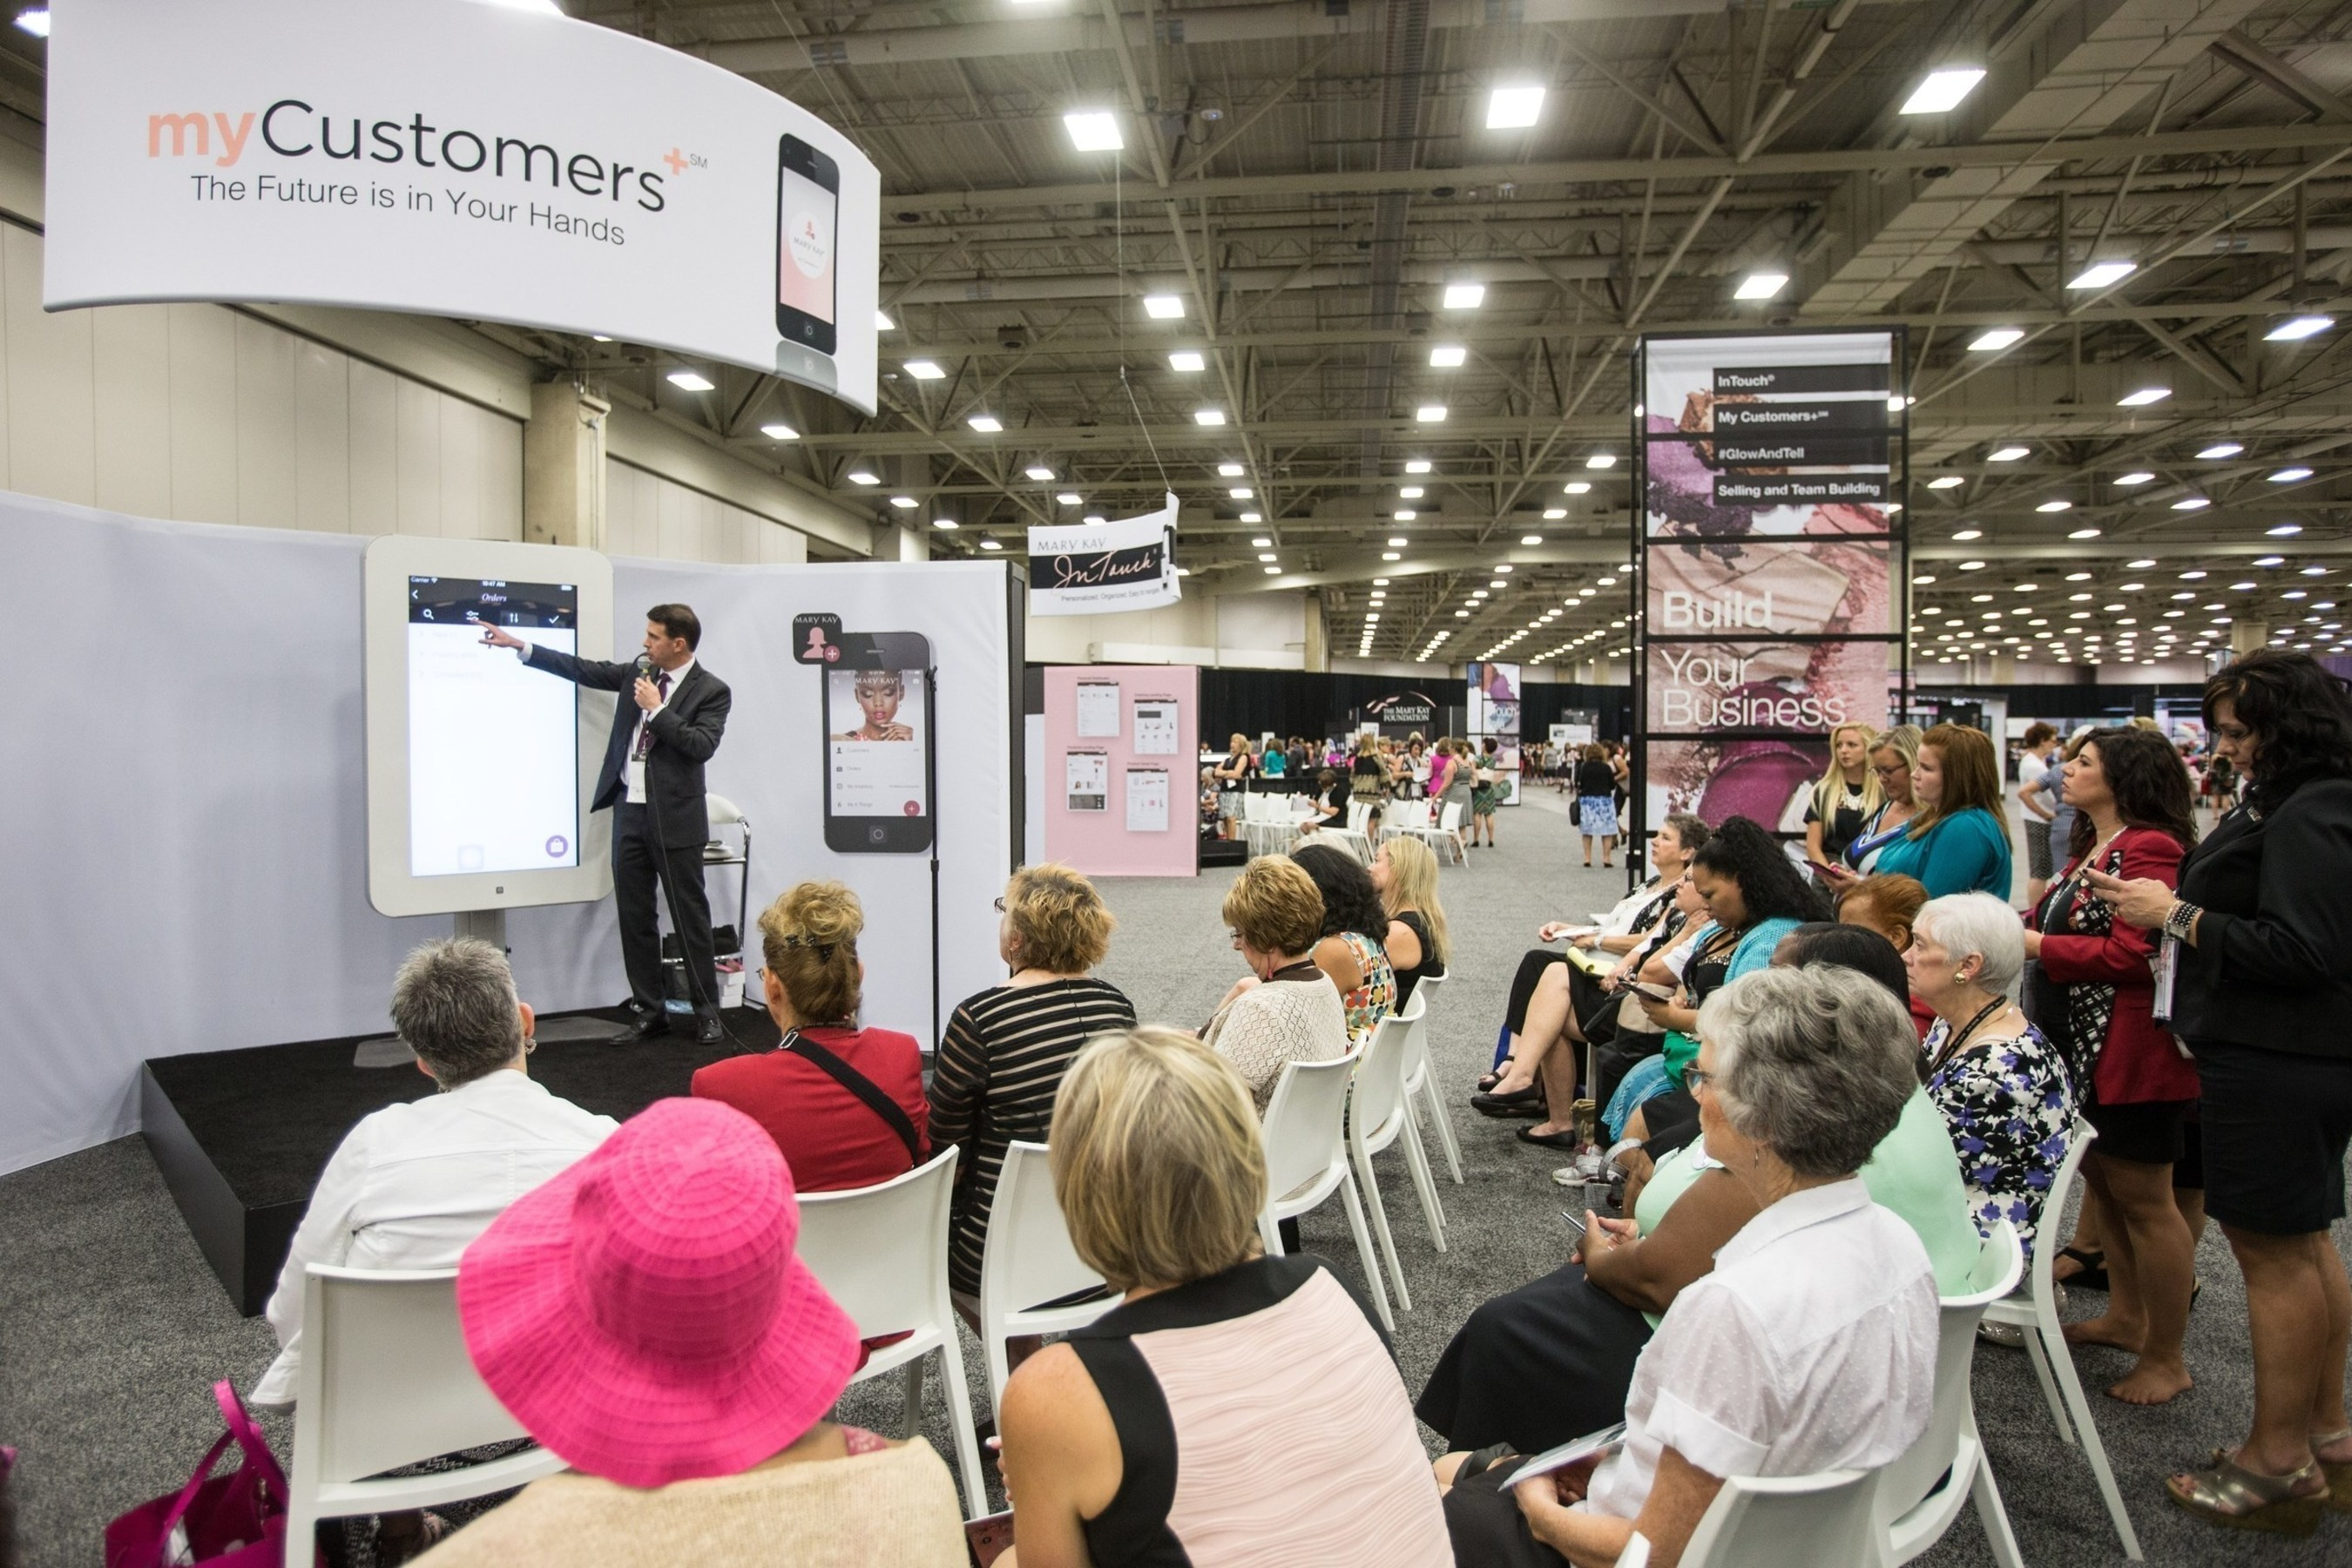 From personalized in-home customer service to instant access online, Mary Kay is making it easier than ever for Mary Kay Independent Beauty Consultants to operate a Mary Kay business. The global beauty company's digital platform includes a wide variety of tools and technology including the newly launched myCustomers+ app which turns an Independent Beauty Consultant's smart device into a fully functional mobile office.